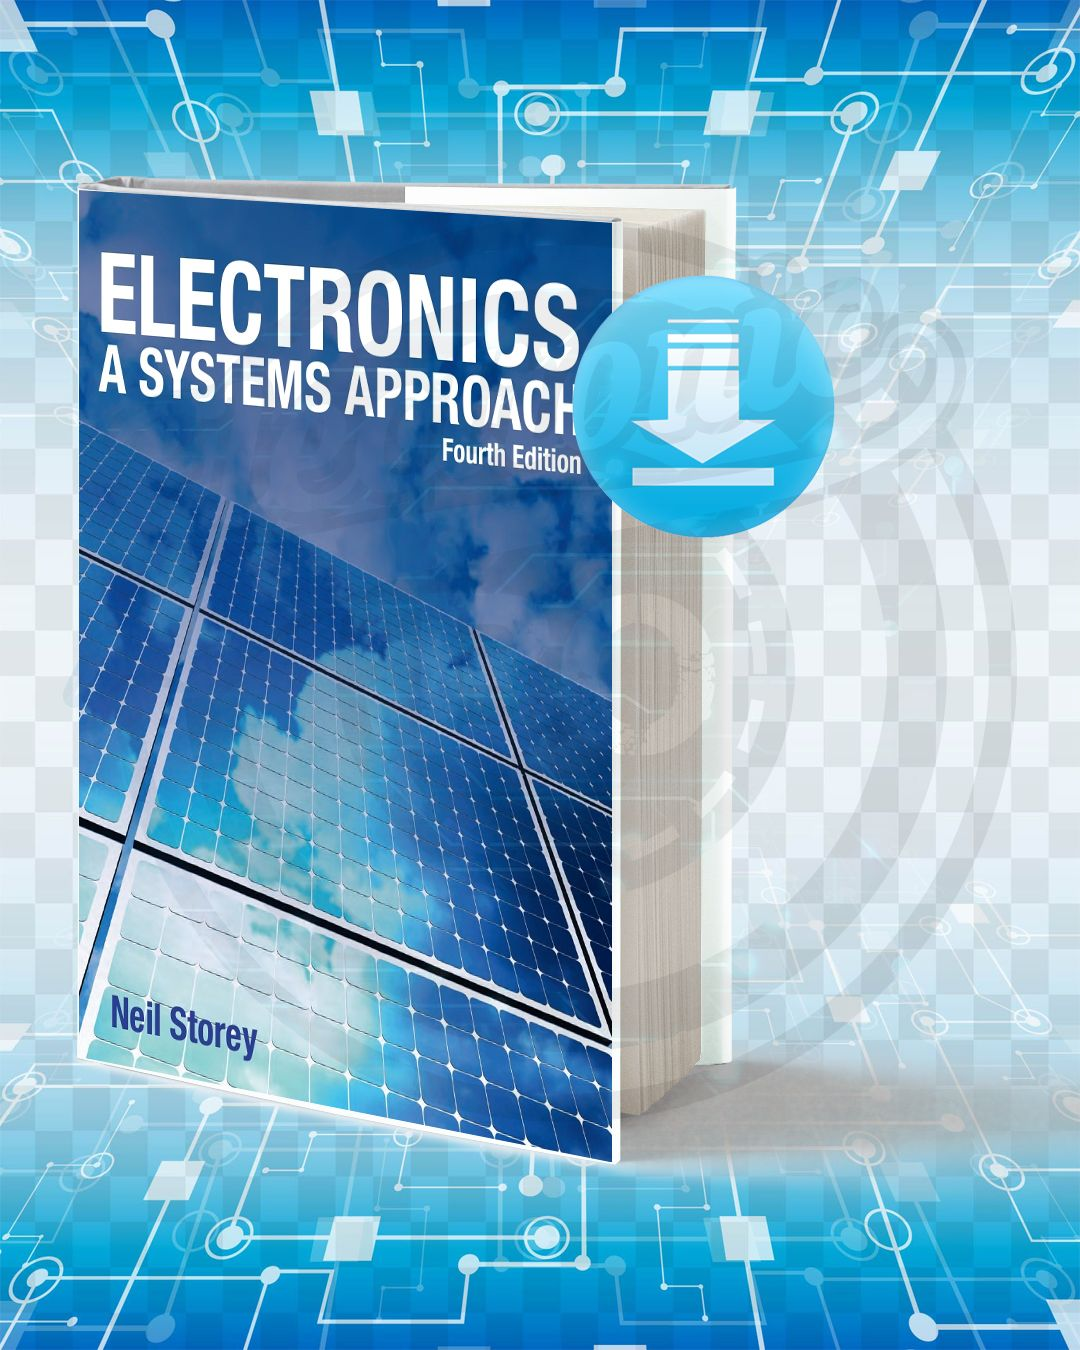 Download Electronics A Systems Approach Basic Electrical Engineering Electronics Electronic World